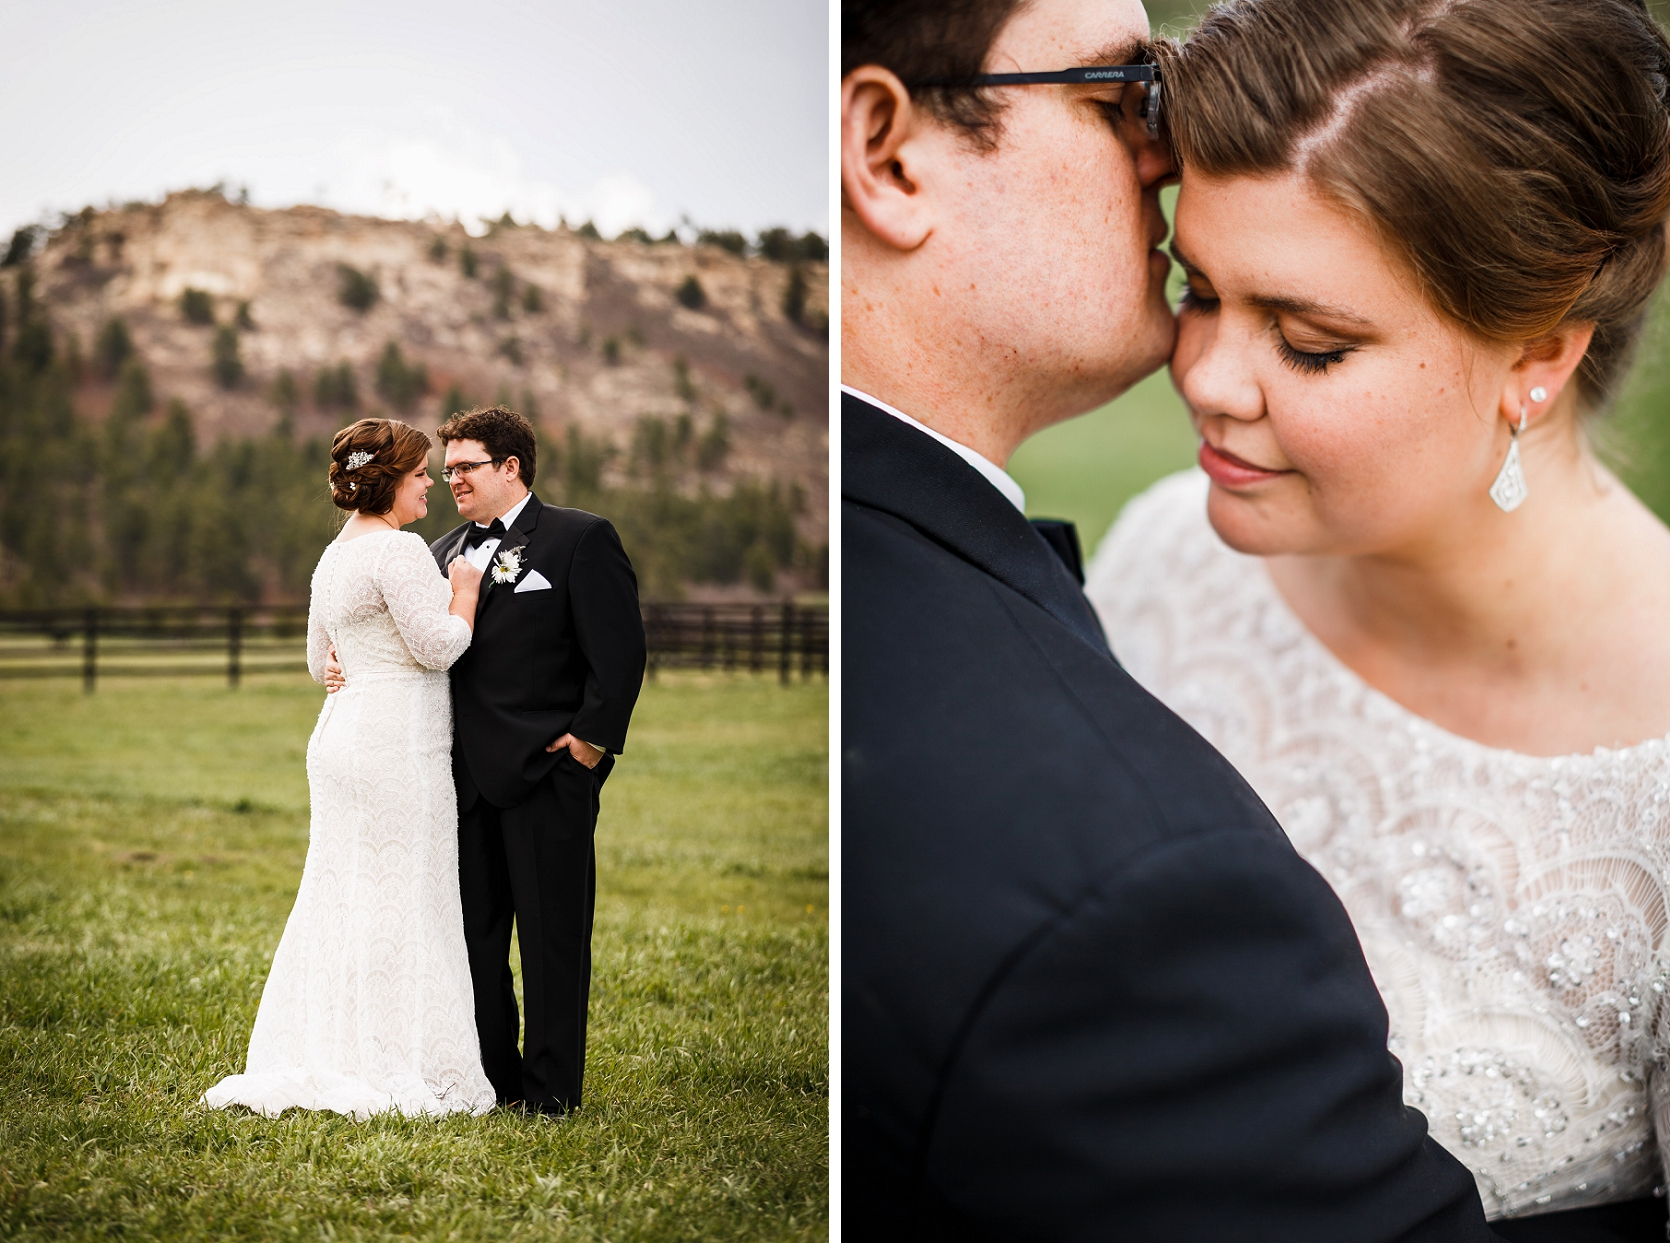 Spruce_Mountain_Ranch_Wedding_0627